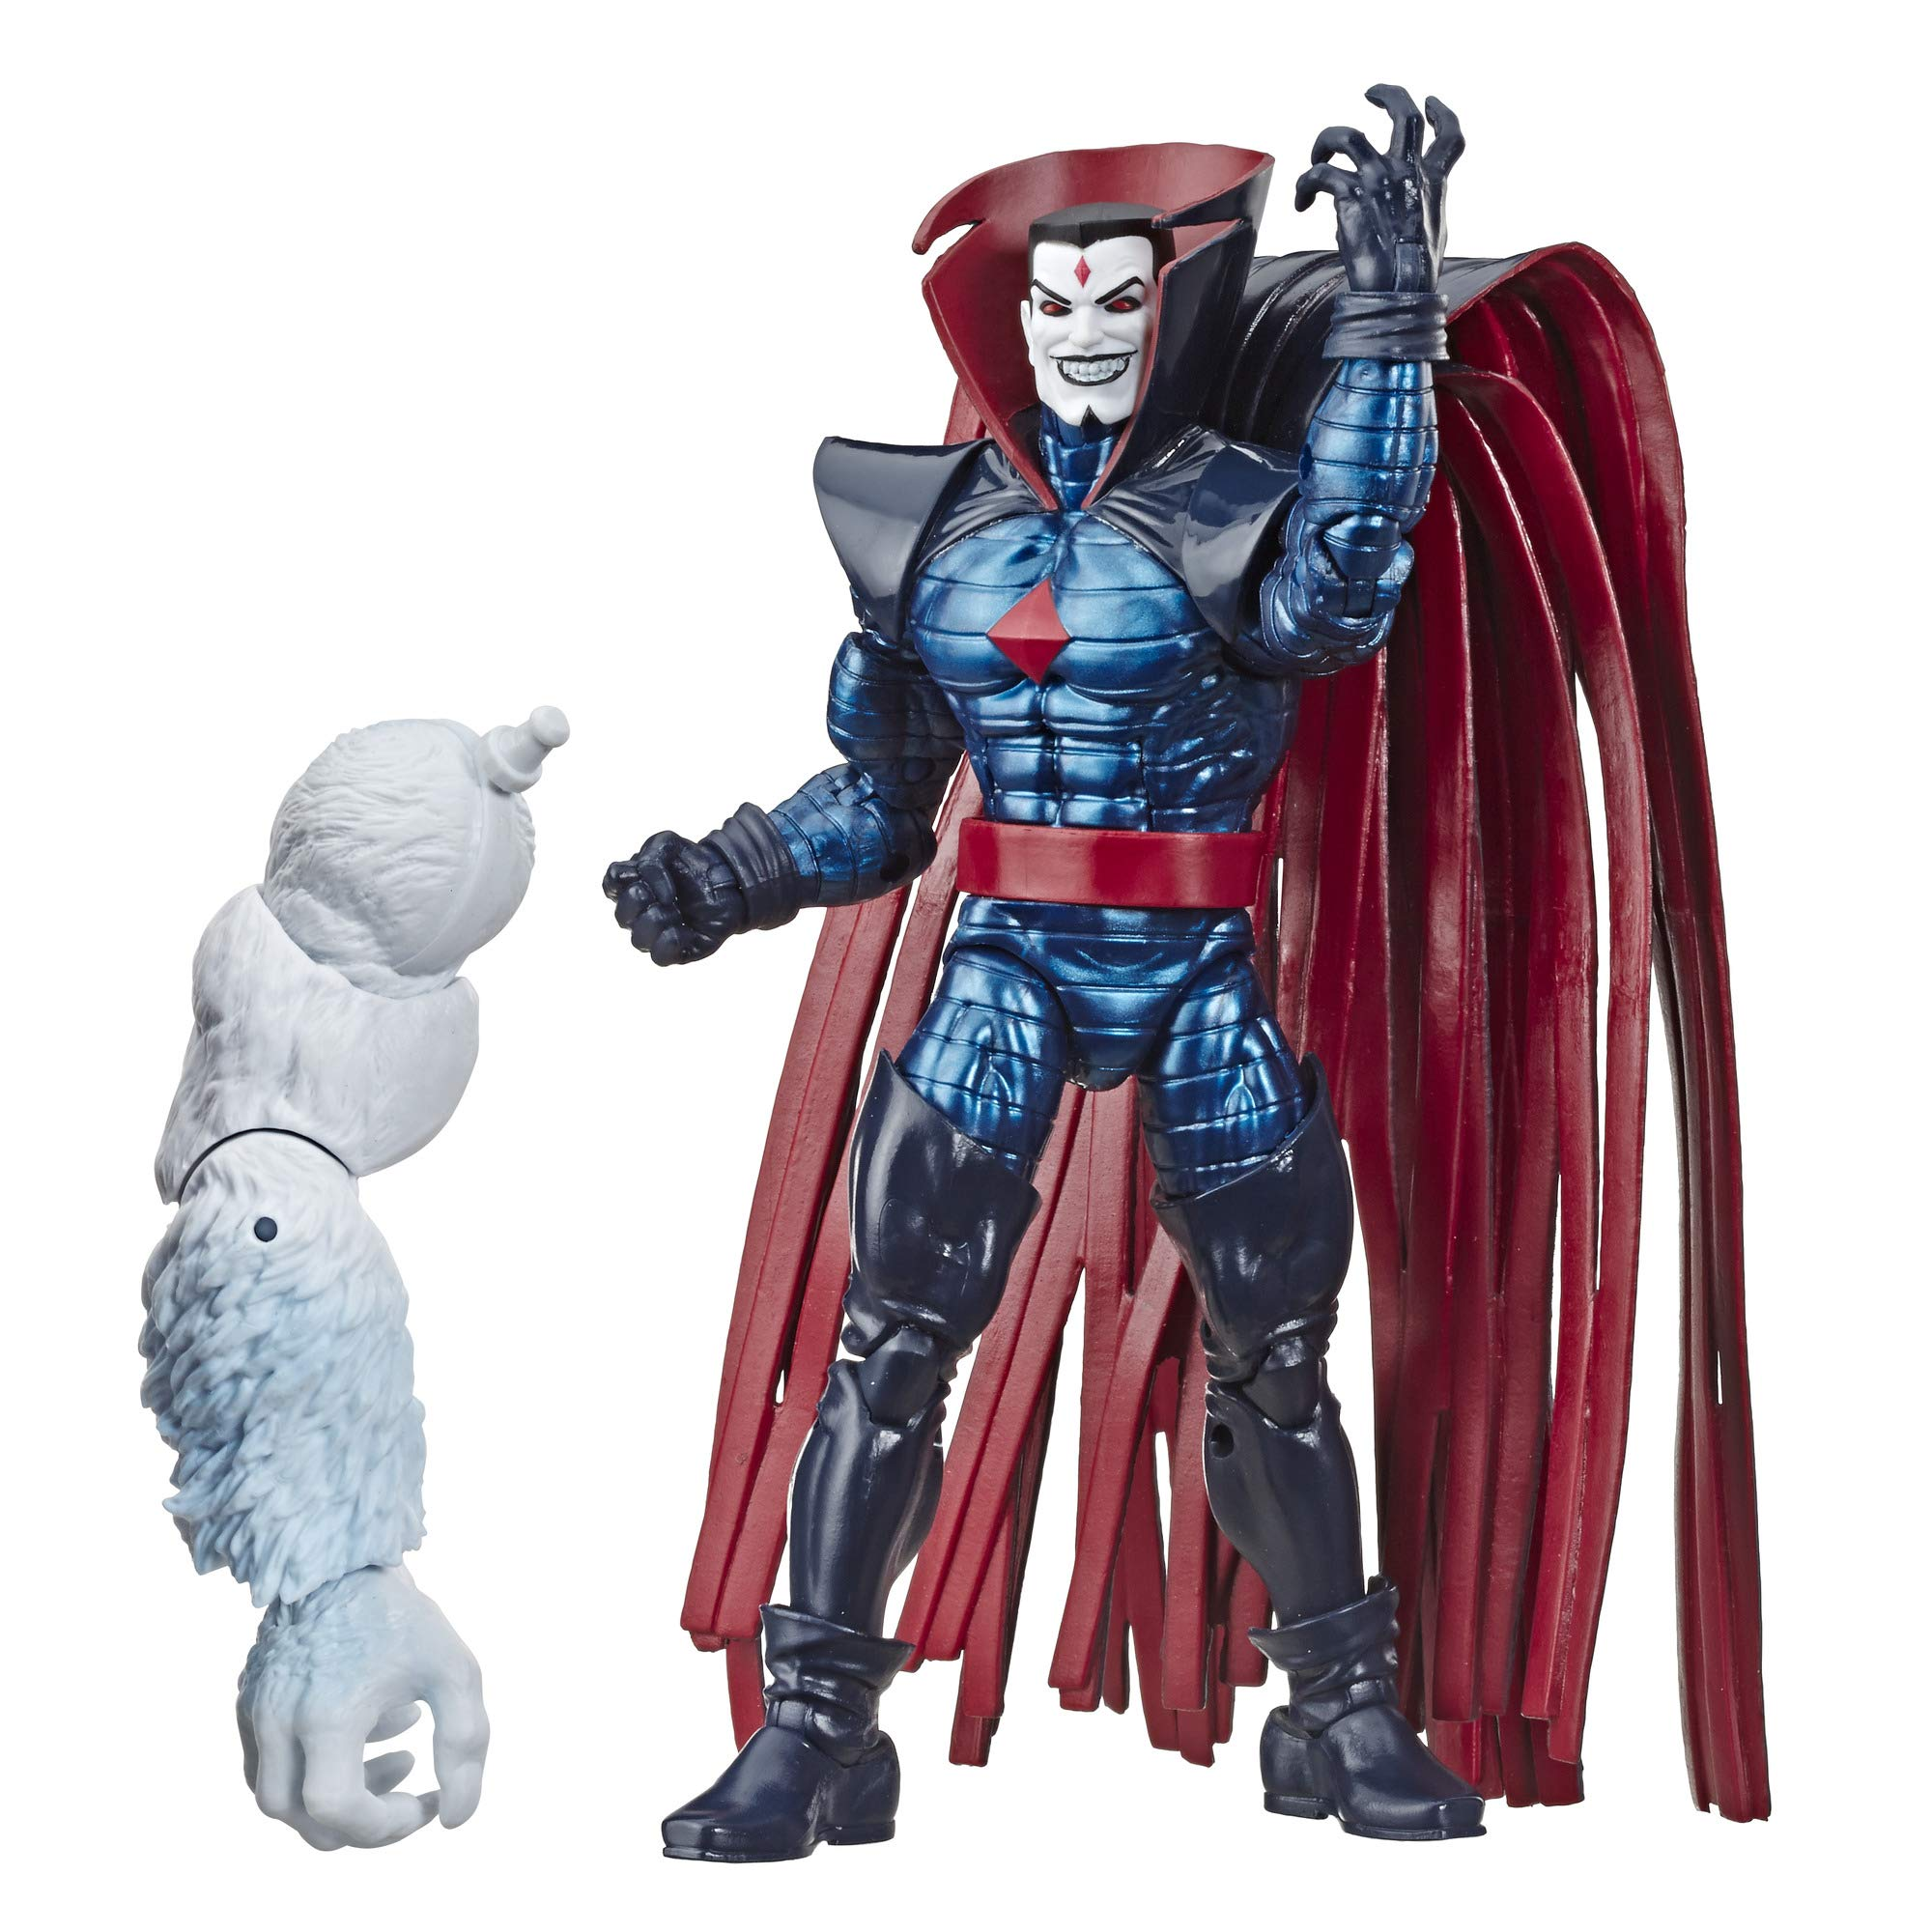 """Marvel Classic Hasbro Marvel Legends Series 6"""" Collectible Action Figure Mister Sinister Toy (X-Men/X-Force Collection) – with Wendigo Build-A-Figure Part, Brown/A"""